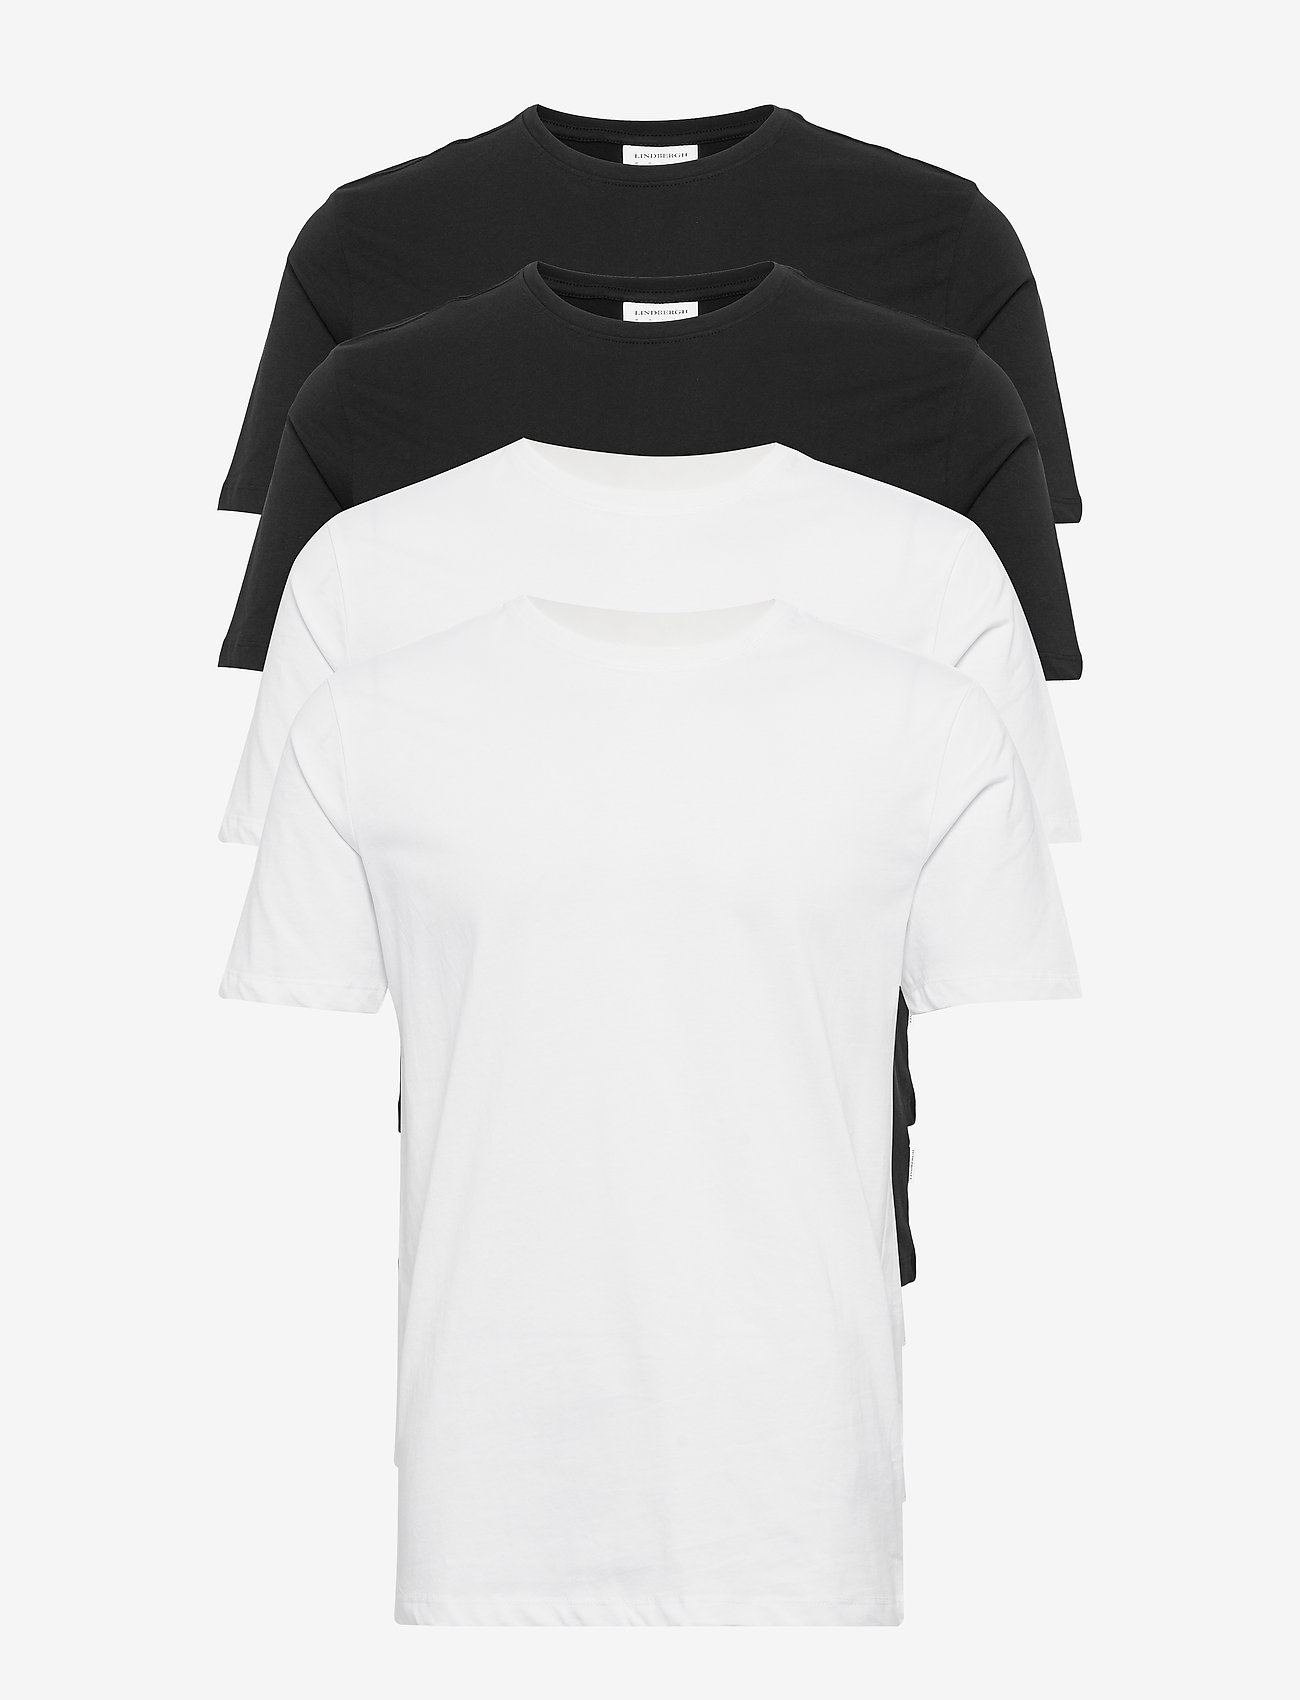 Lindbergh - Basic tee S/S - multipack - bl/wh